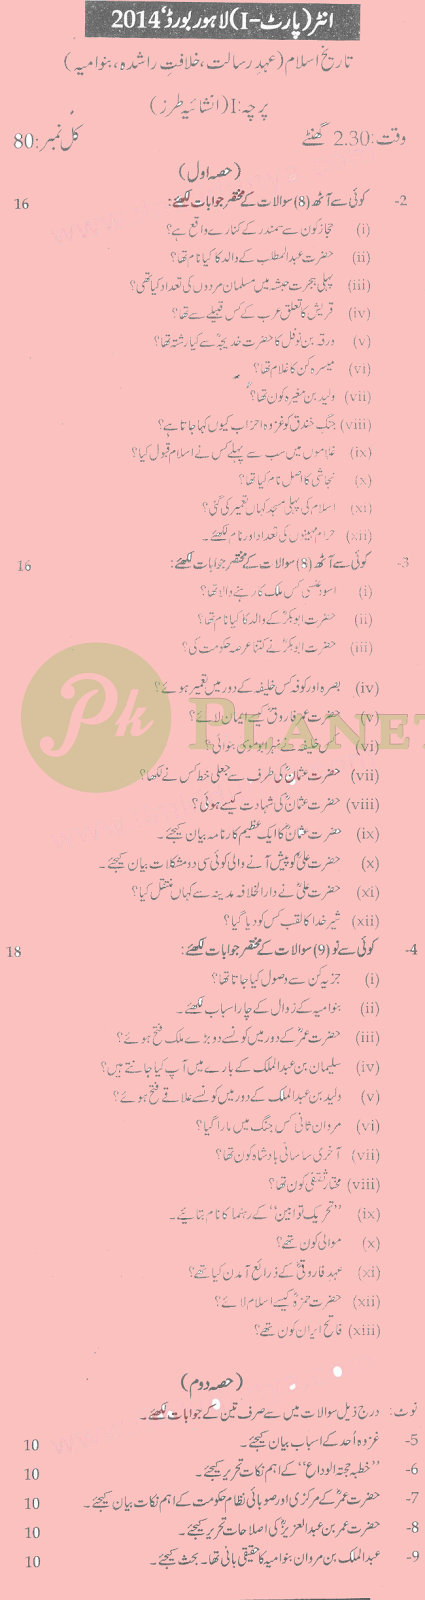 Intermediate Part 1 Past Papers Lahore Board History of Islam 2014